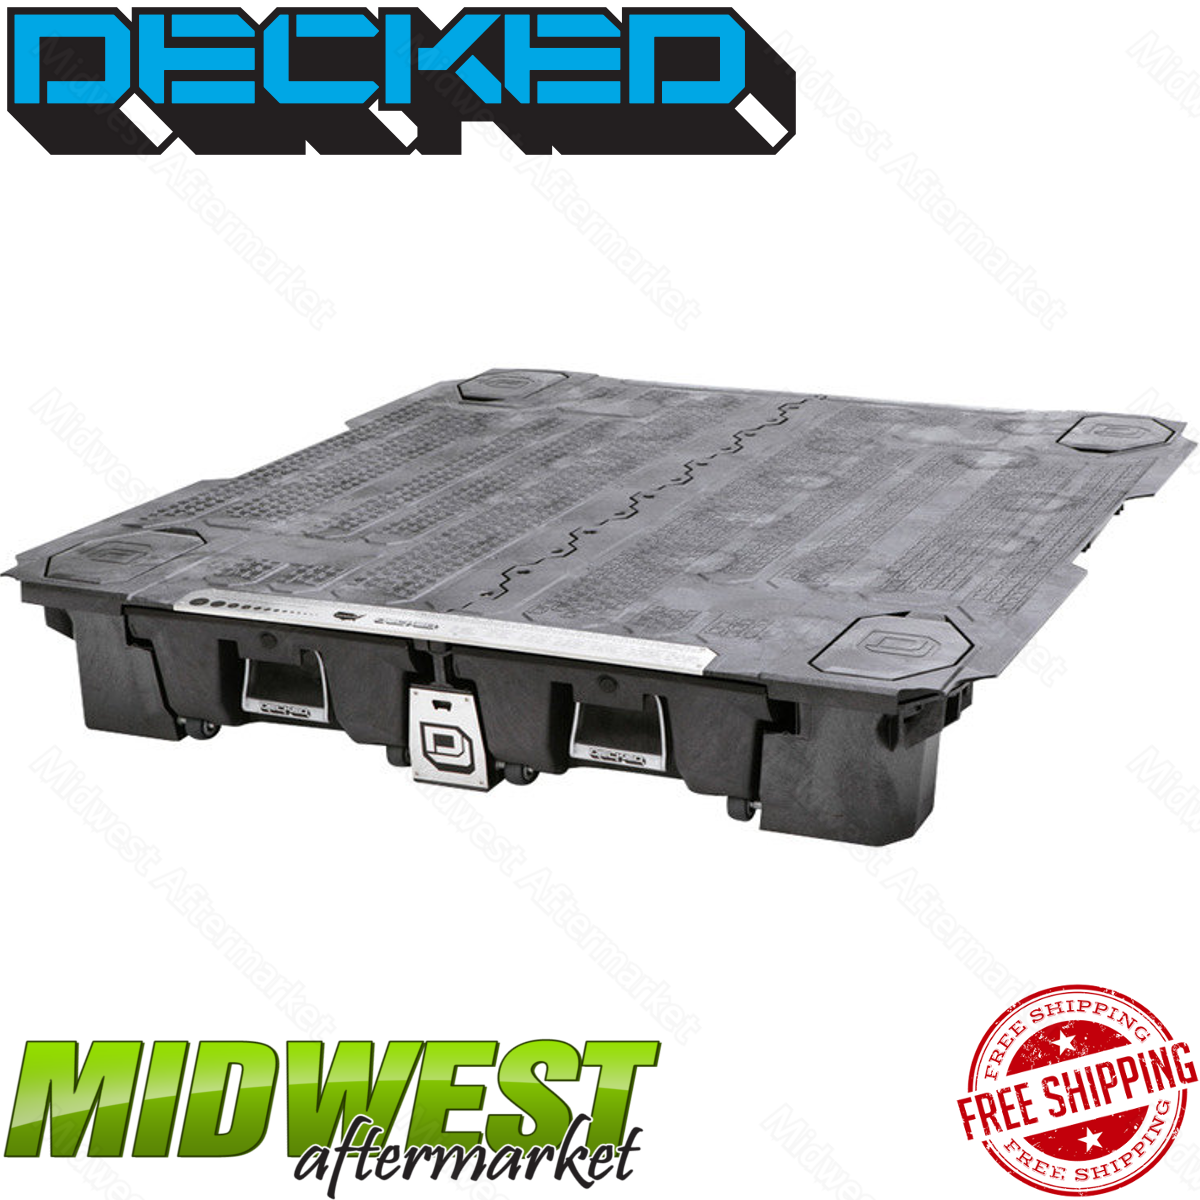 2017 Ford F250 Super Duty Regular Cab Transmission: Decked Truck Bed Storage System Fits 2017 Ford F-250 F-350